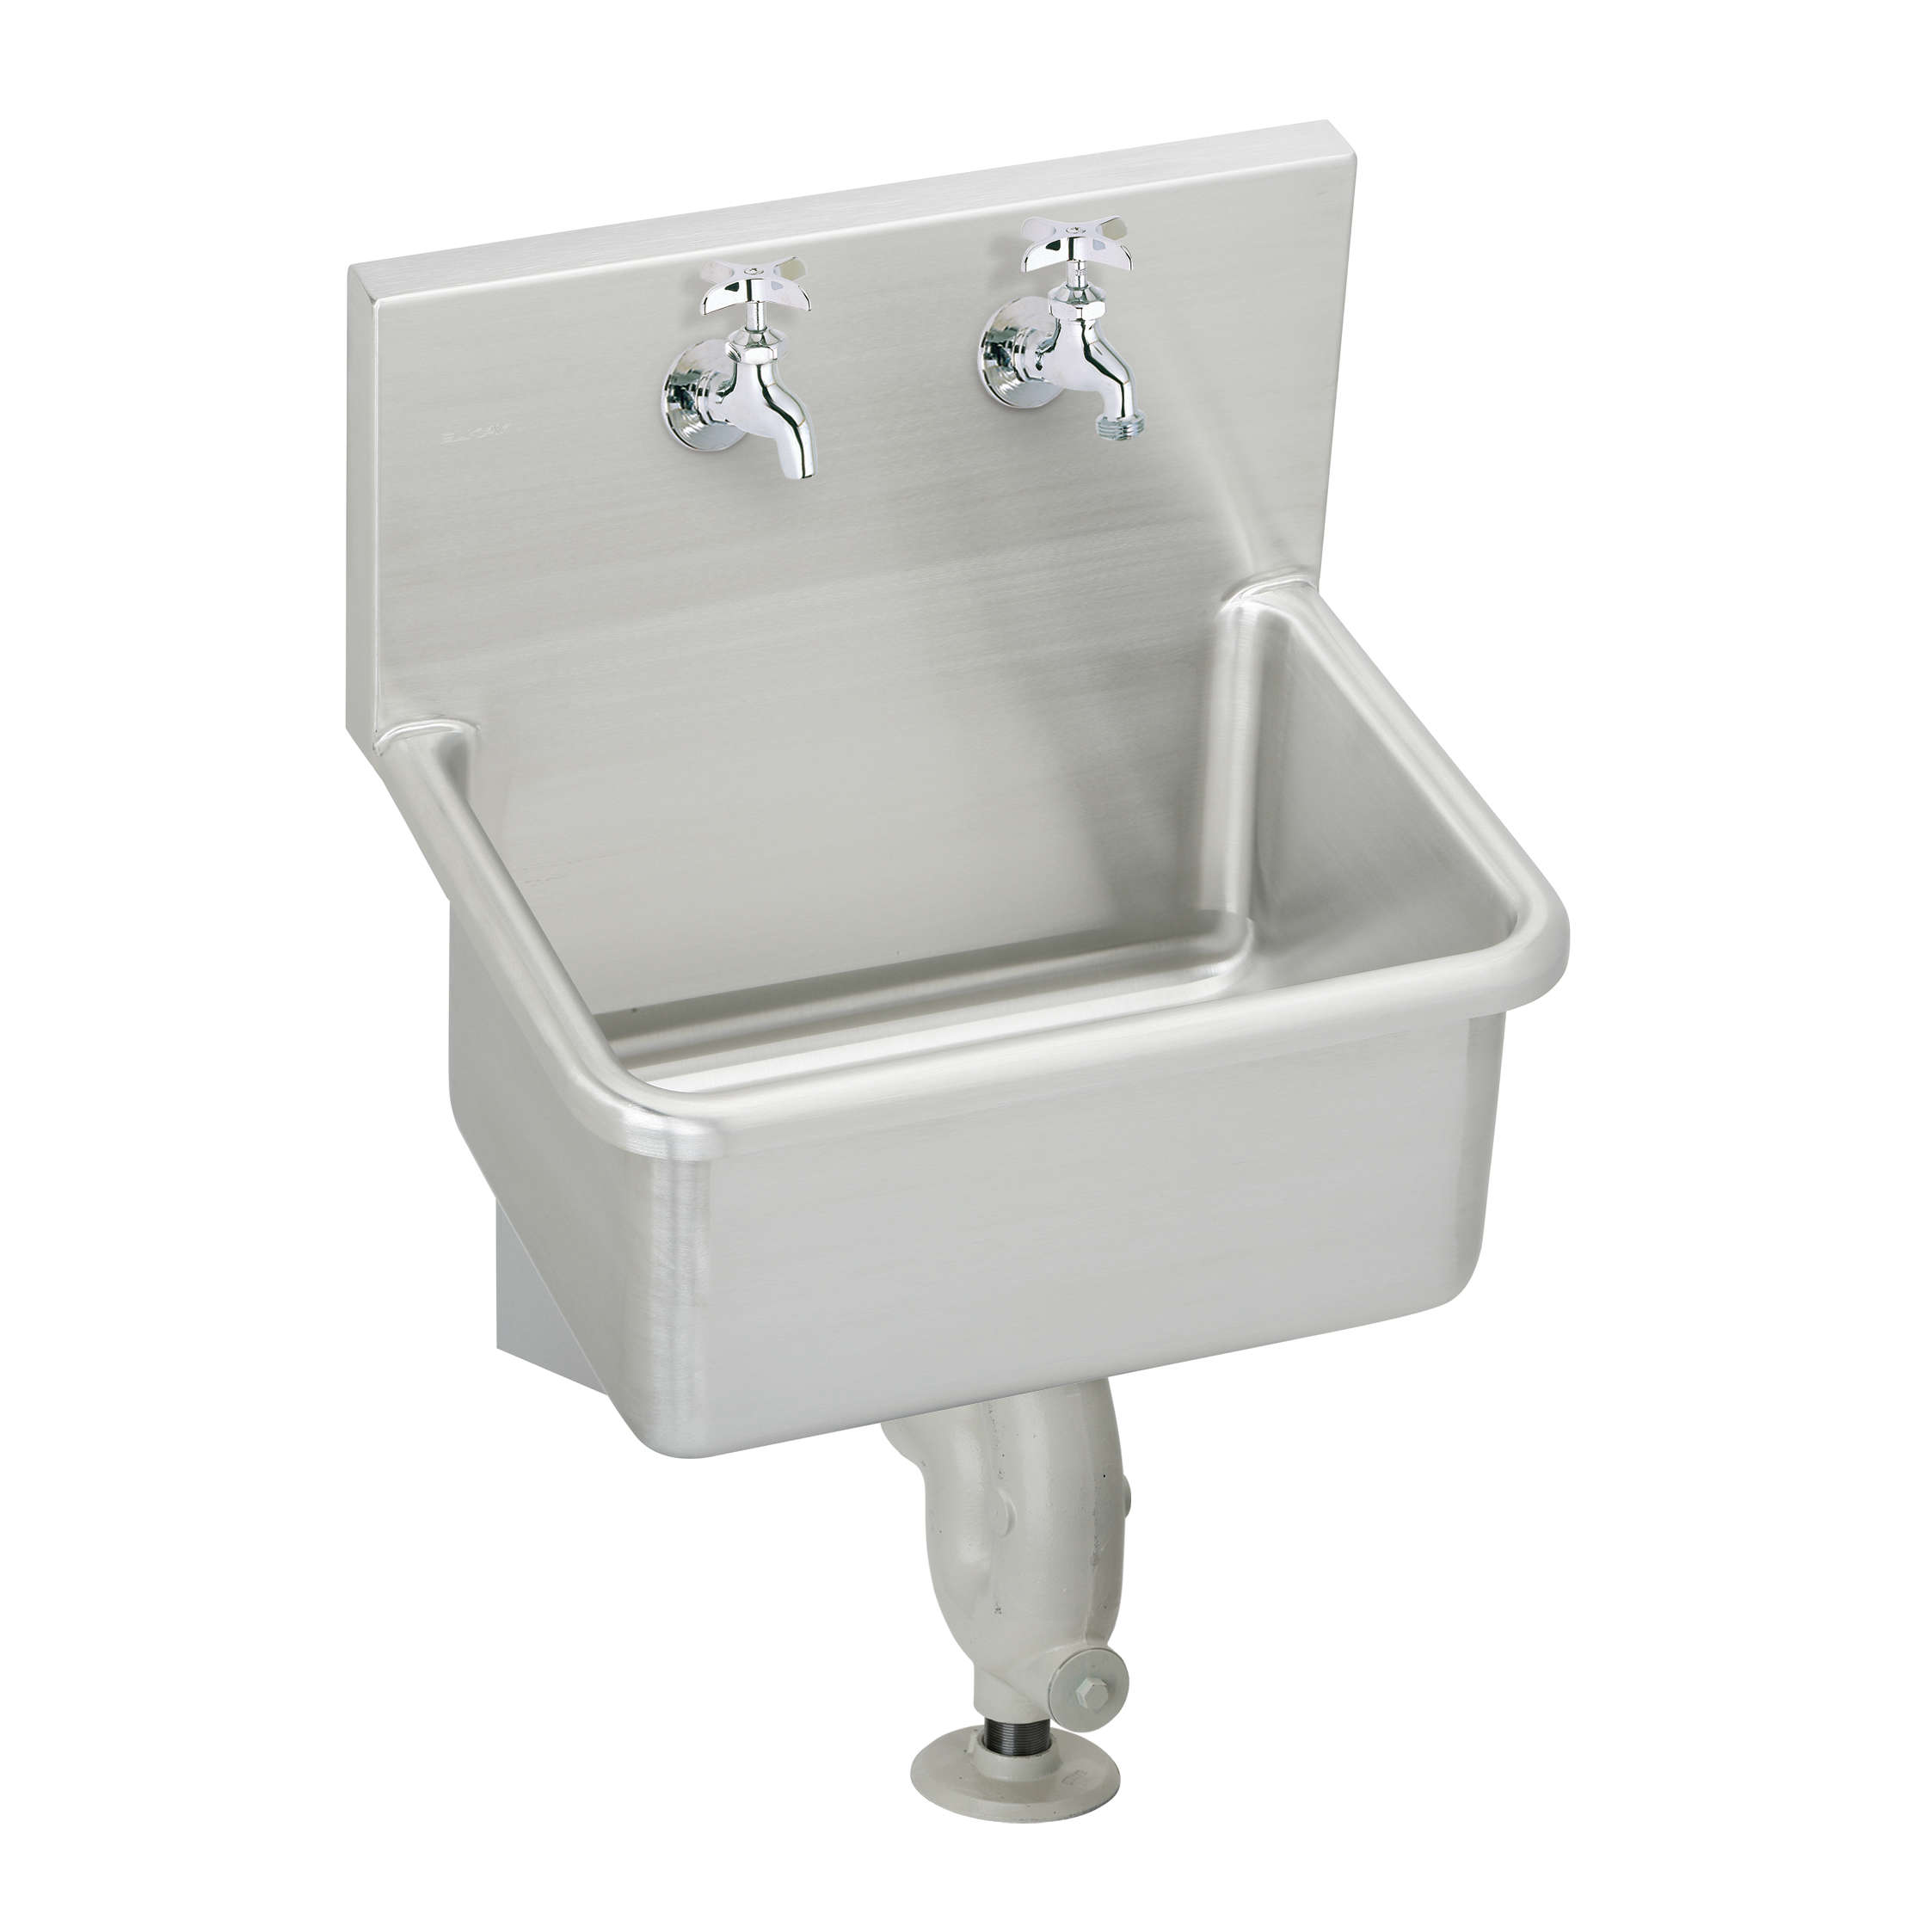 10 Easy Pieces: Wall-Mount Utility Sinks | Gardenista: Sourcebook ...